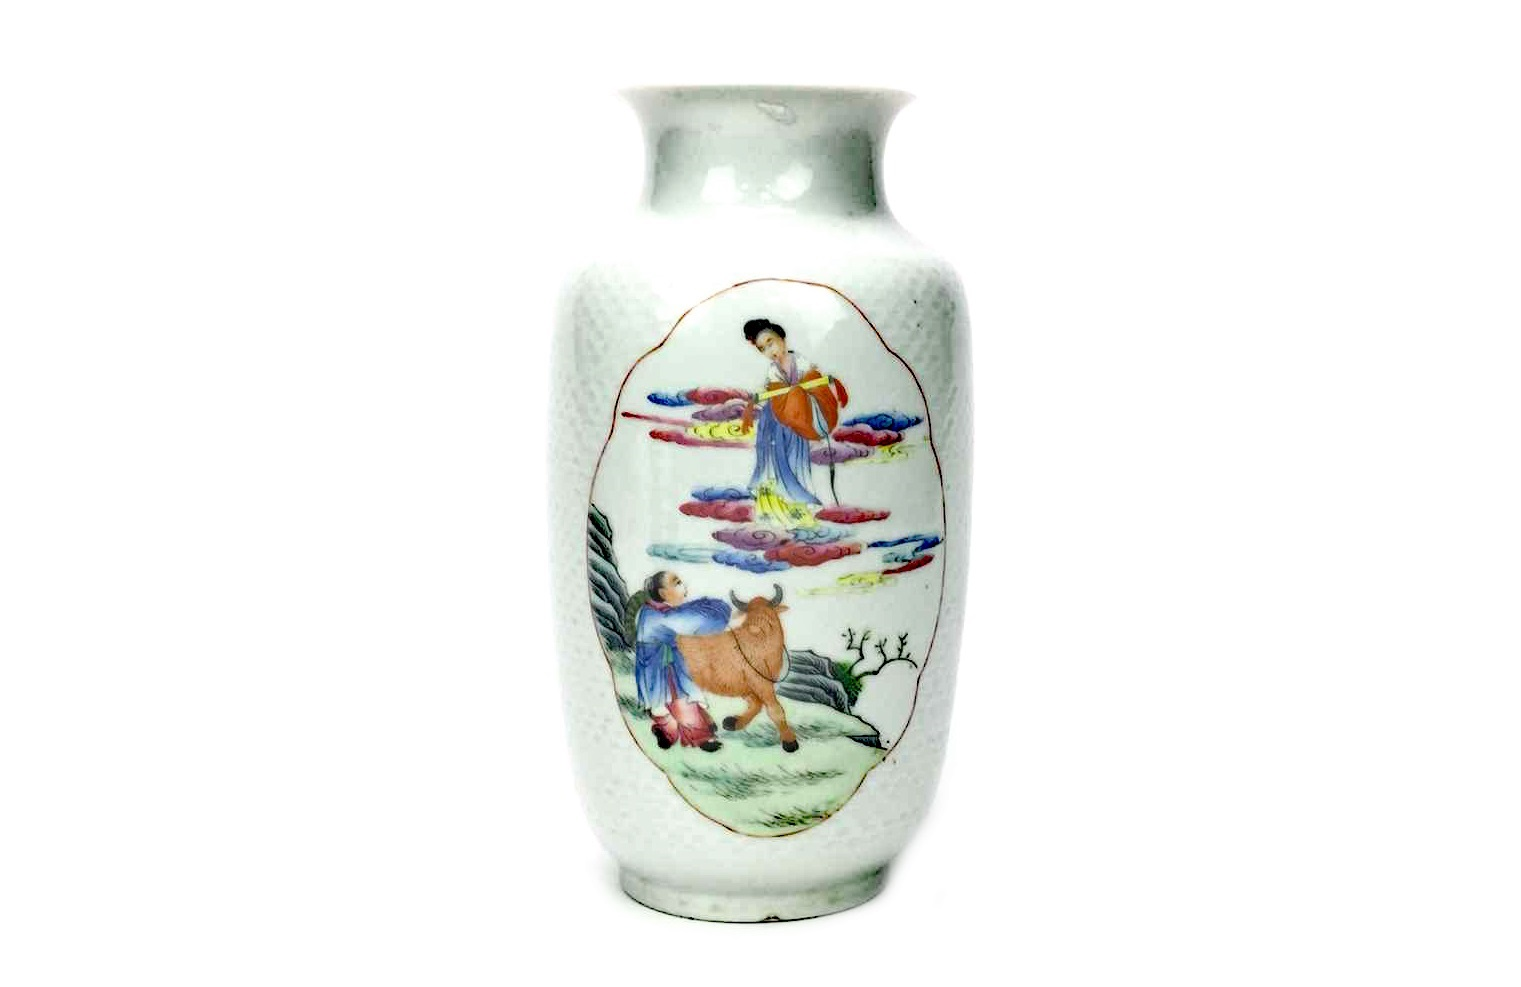 Lot 1128 - A 20TH CENTURY CHINESE VASE